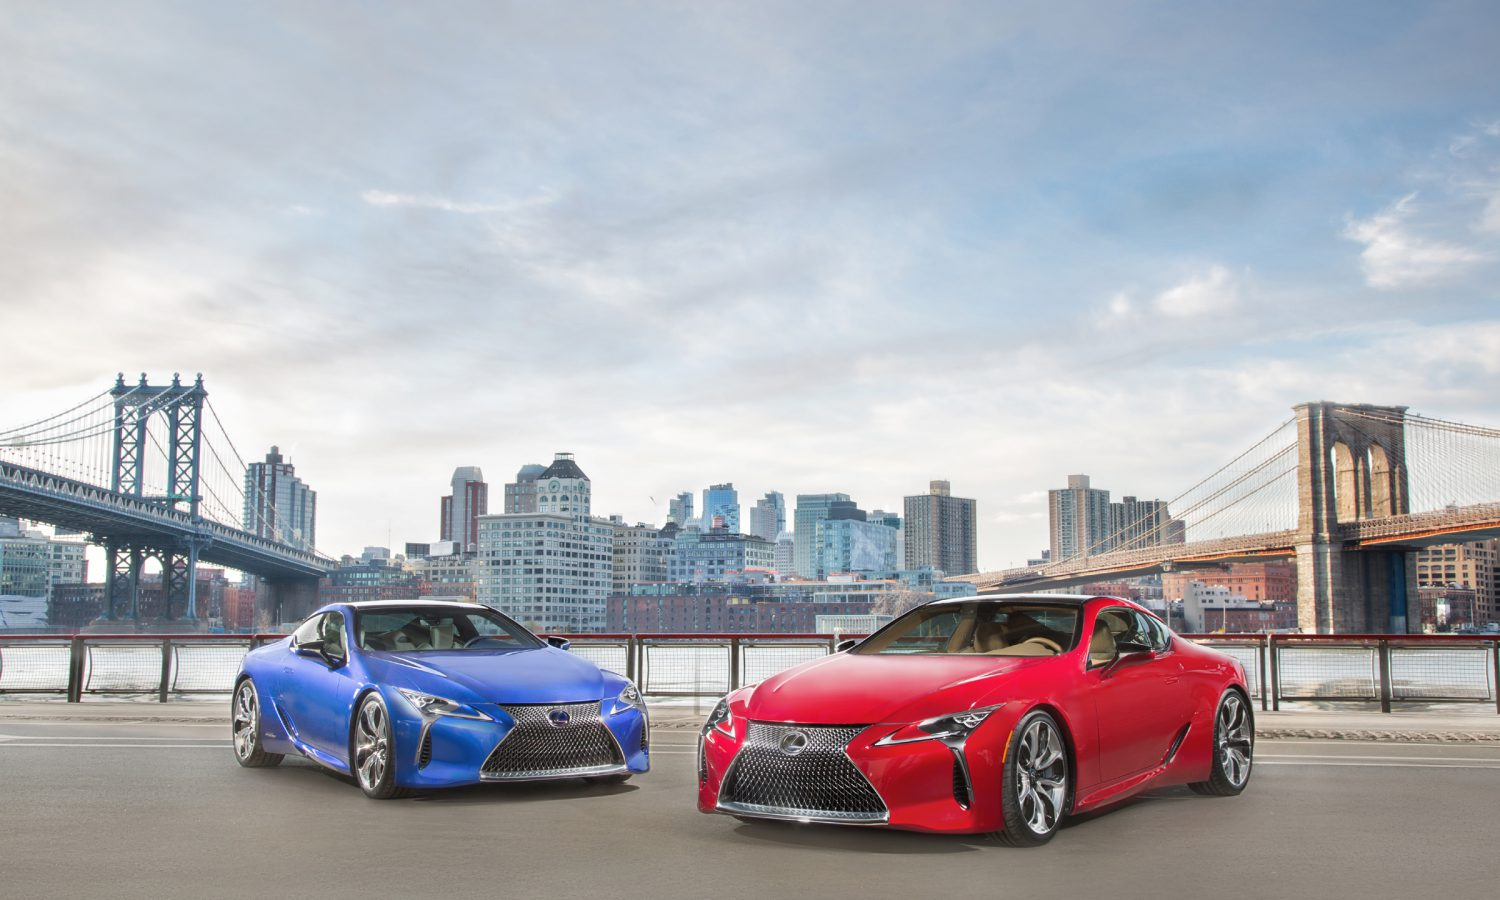 Lexus to Feature All-New LC 500, LC 500 Hybrid at New York Auto Show